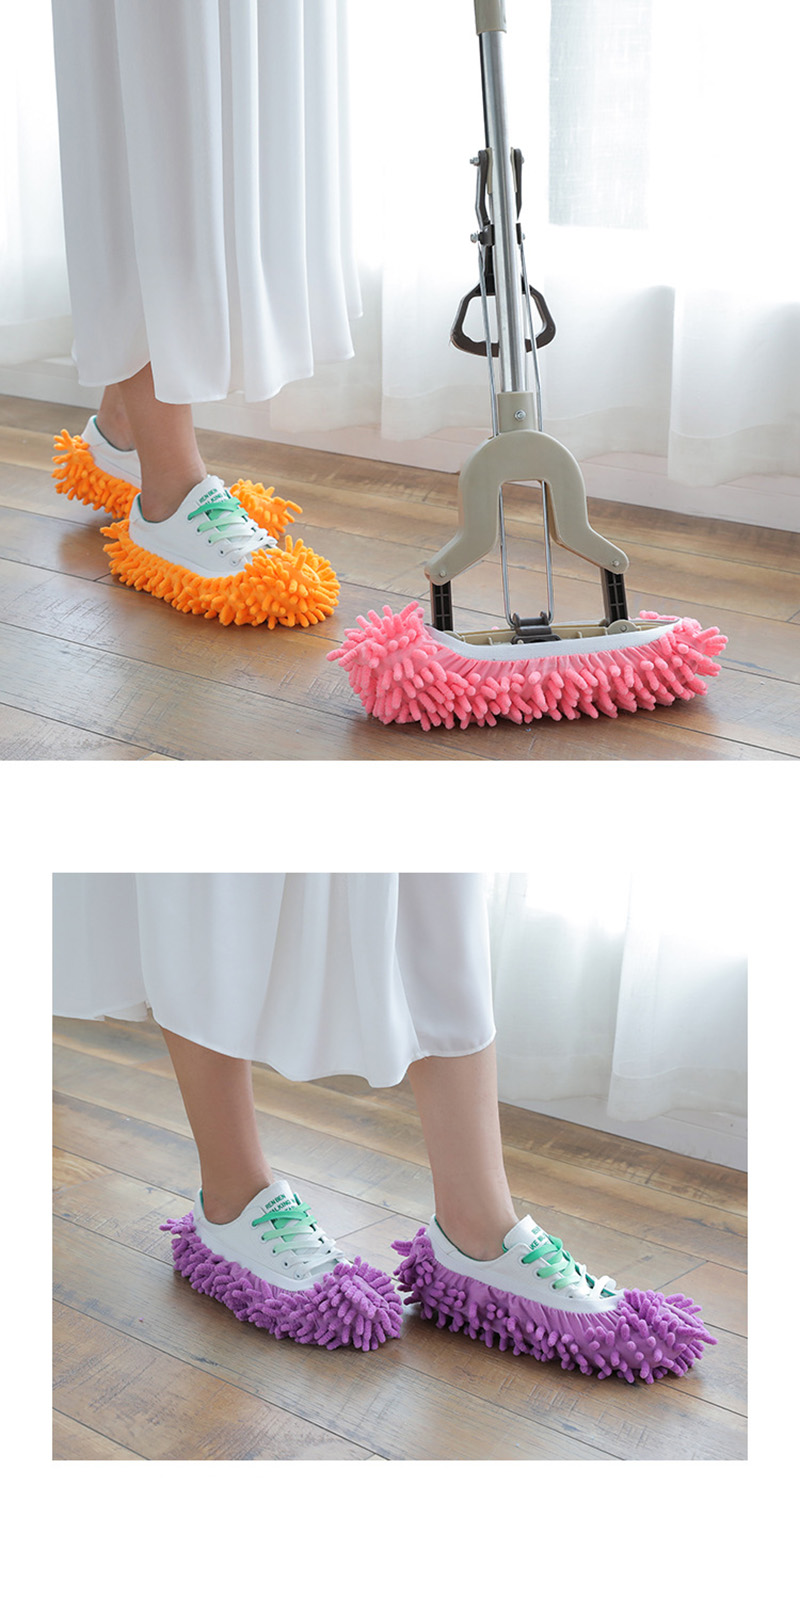 1Pcs Shoes Covers Mop Slipper Lazy House Floor Polishing Cleaning Easy Foot Sock Shoe Cover Mopping Lazy Shoe Cover Blue Purple (4)